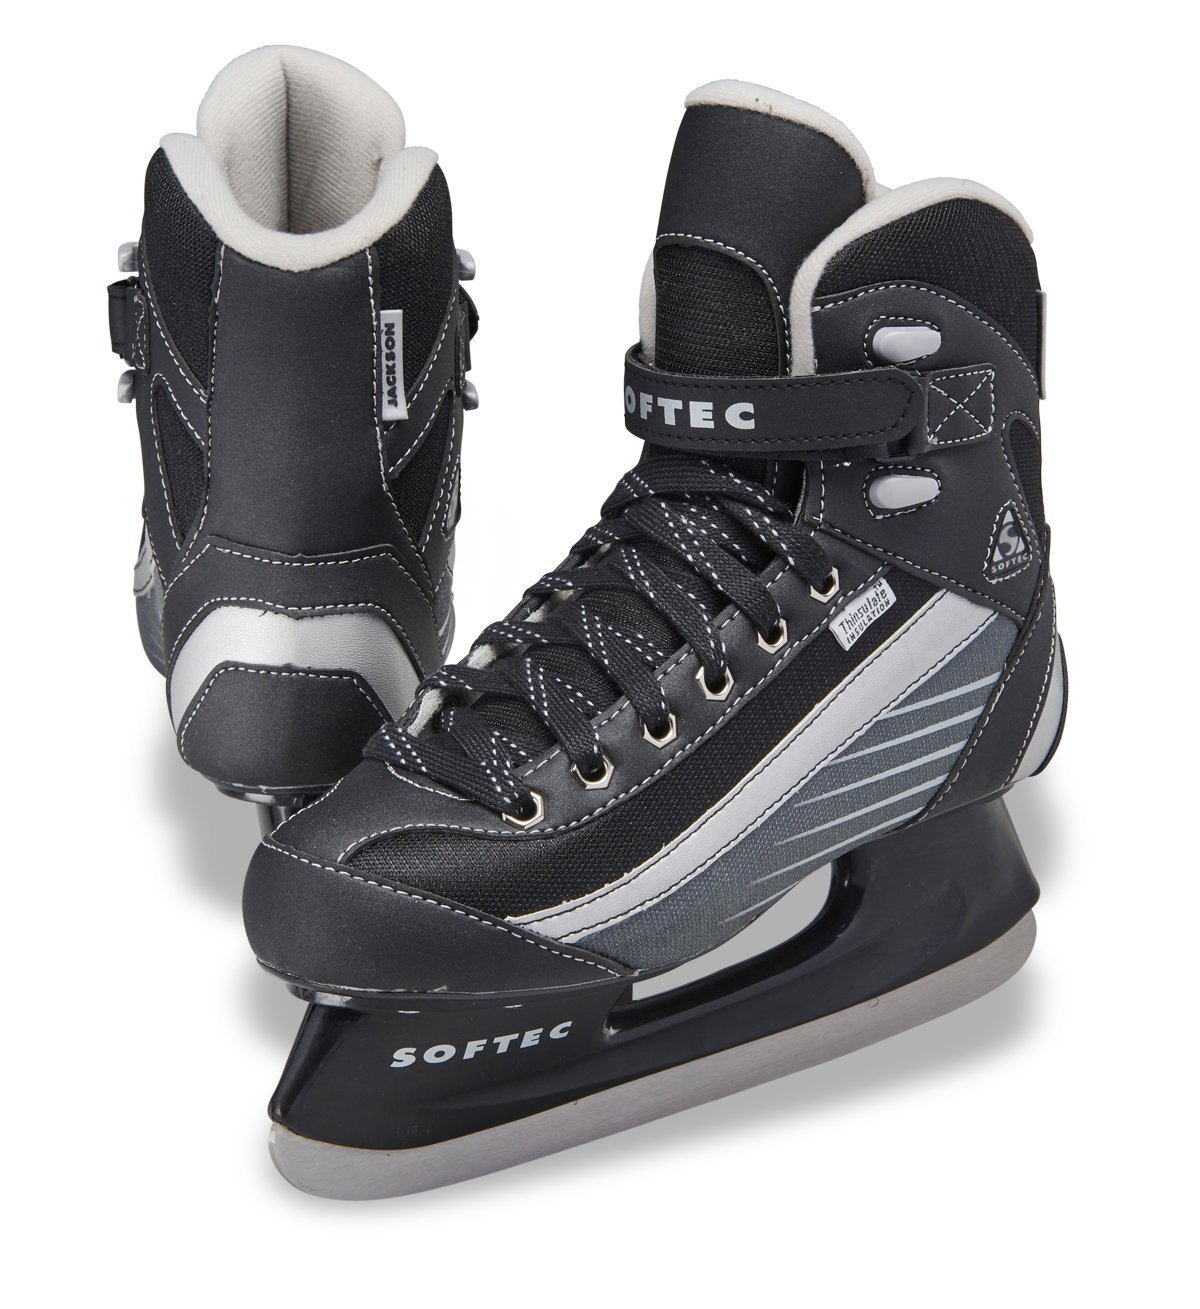 Jackson Ultima Softec Sport ST6107 Black Ice Skates for Boys, Size: Youth 1 (Kids)